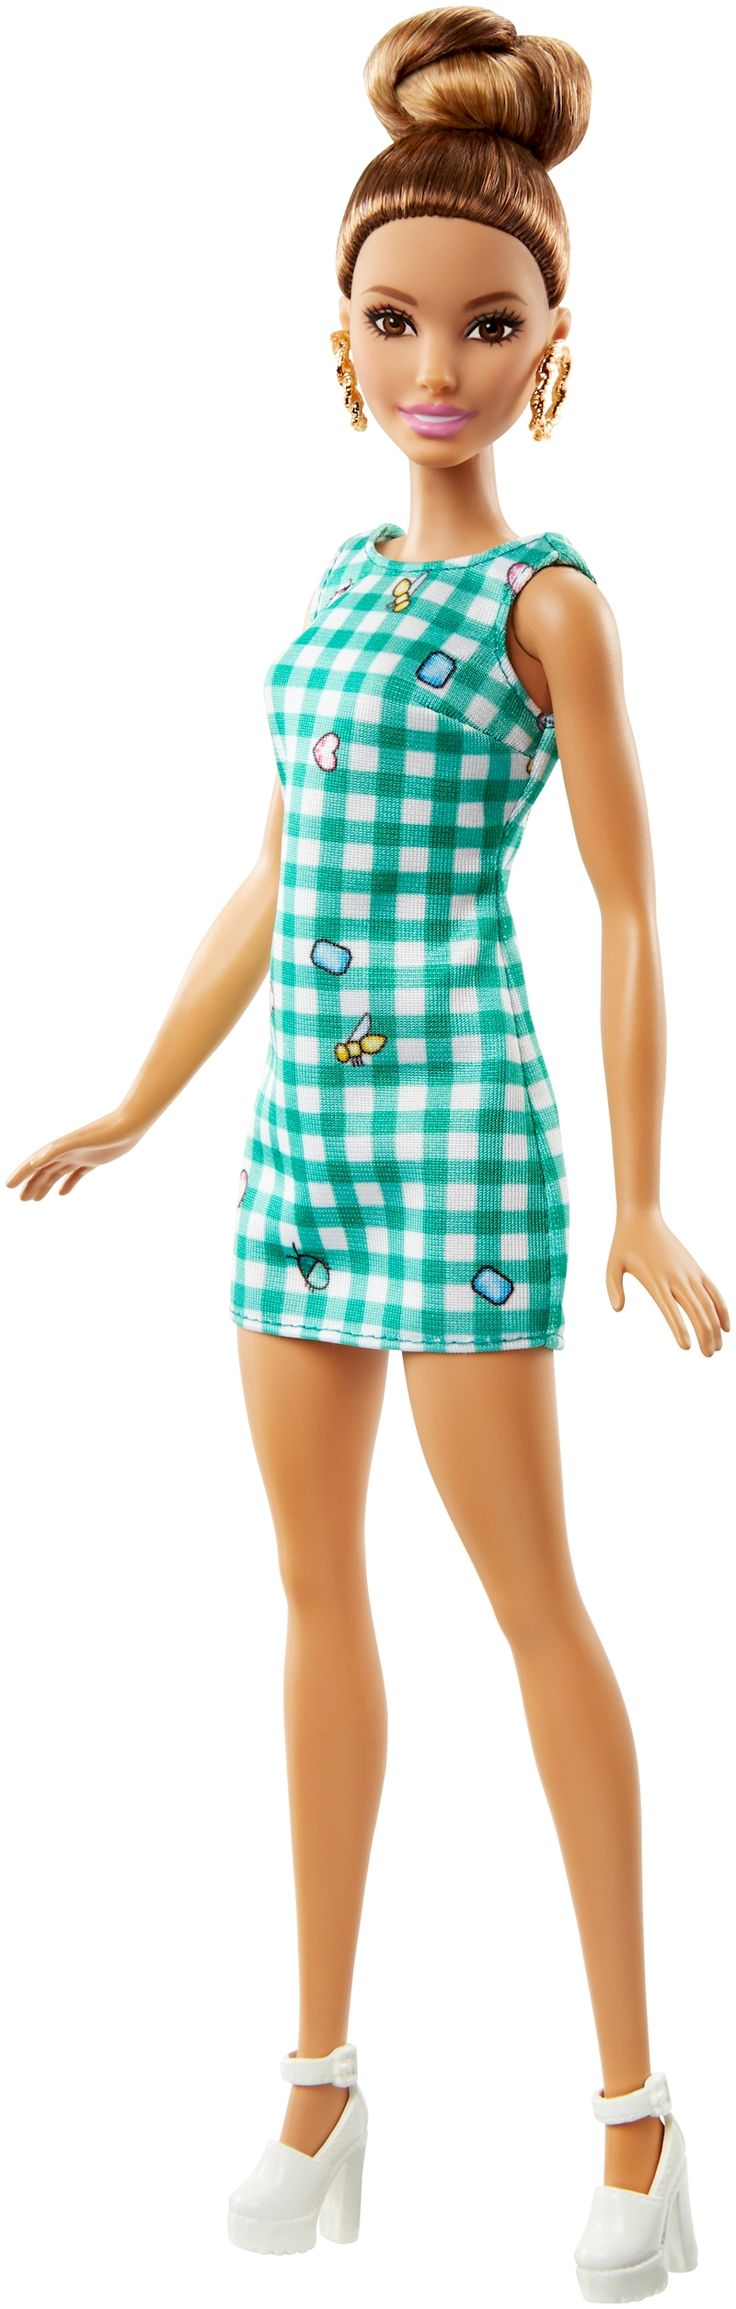 50 Barbie® Fashionistas Doll (Lime Gingham) ORIGINAL